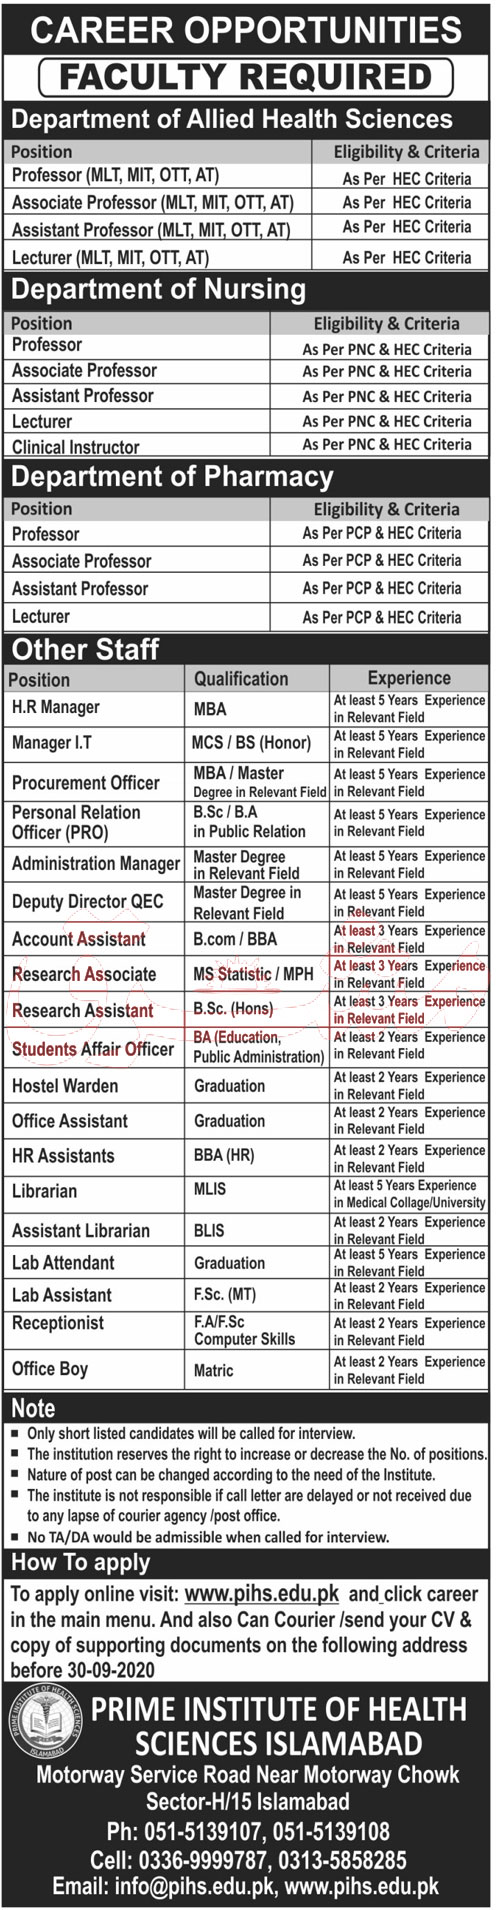 Teaching Faculty Required in Prime Institute of Health Sciences Islamabad